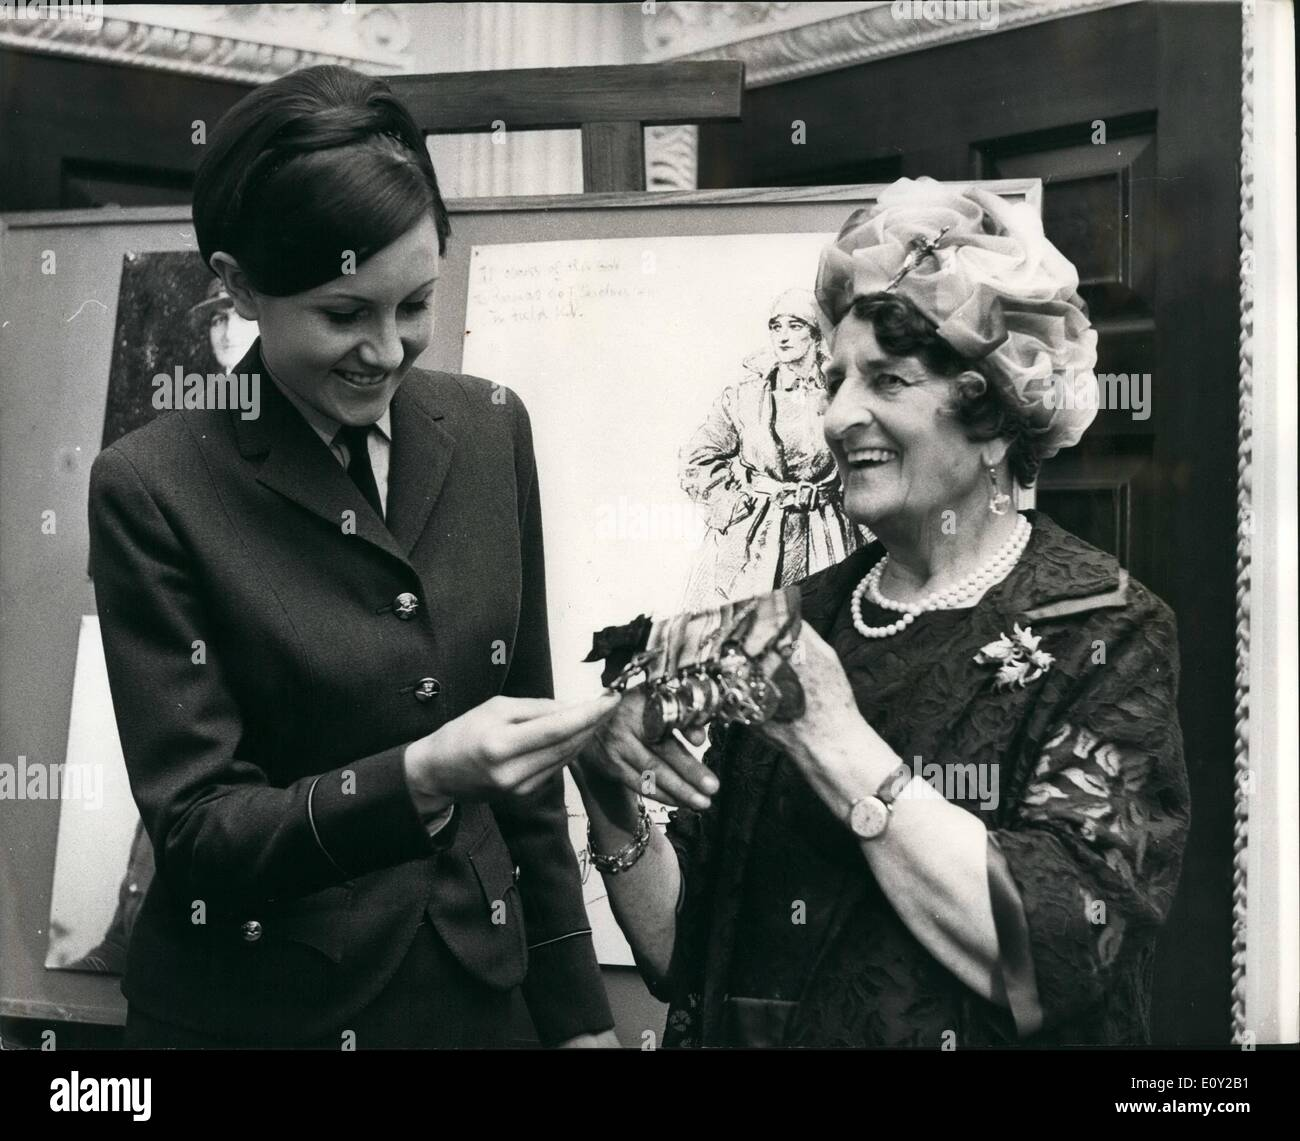 Jun. 06, 1968 - One of the most decorated women of World War I 84 year old Baroness Elizabeth de T'Serclars visits the Ministry - Stock Image